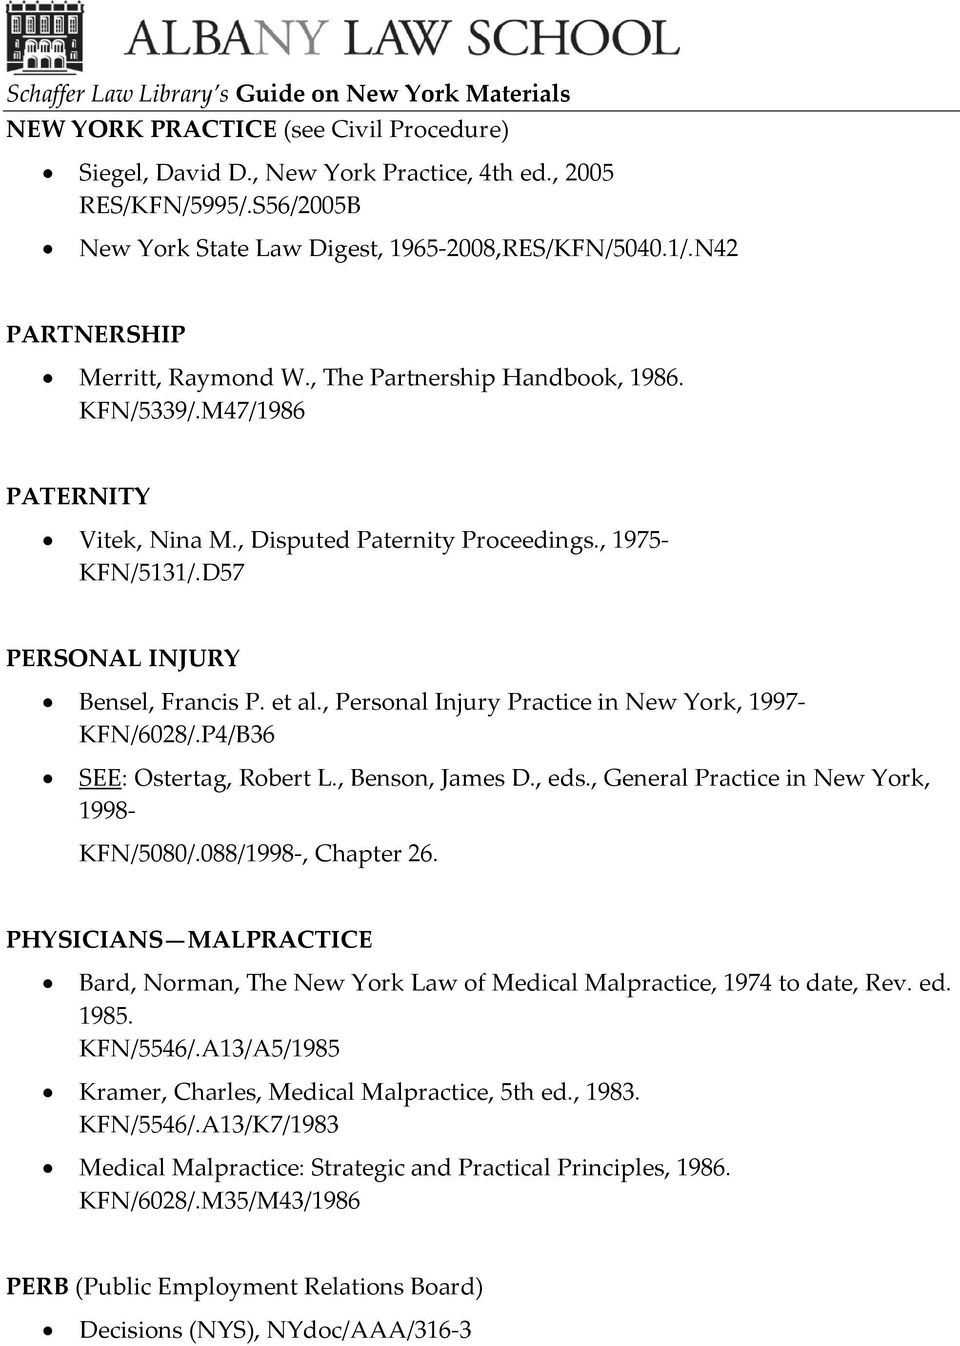 D57 PERSONAL INJURY Bensel, Francis P. et al., Personal Injury Practice in New York, 1997- KFN/6028/.P4/B36 KFN/5080/.088/, Chapter 26.